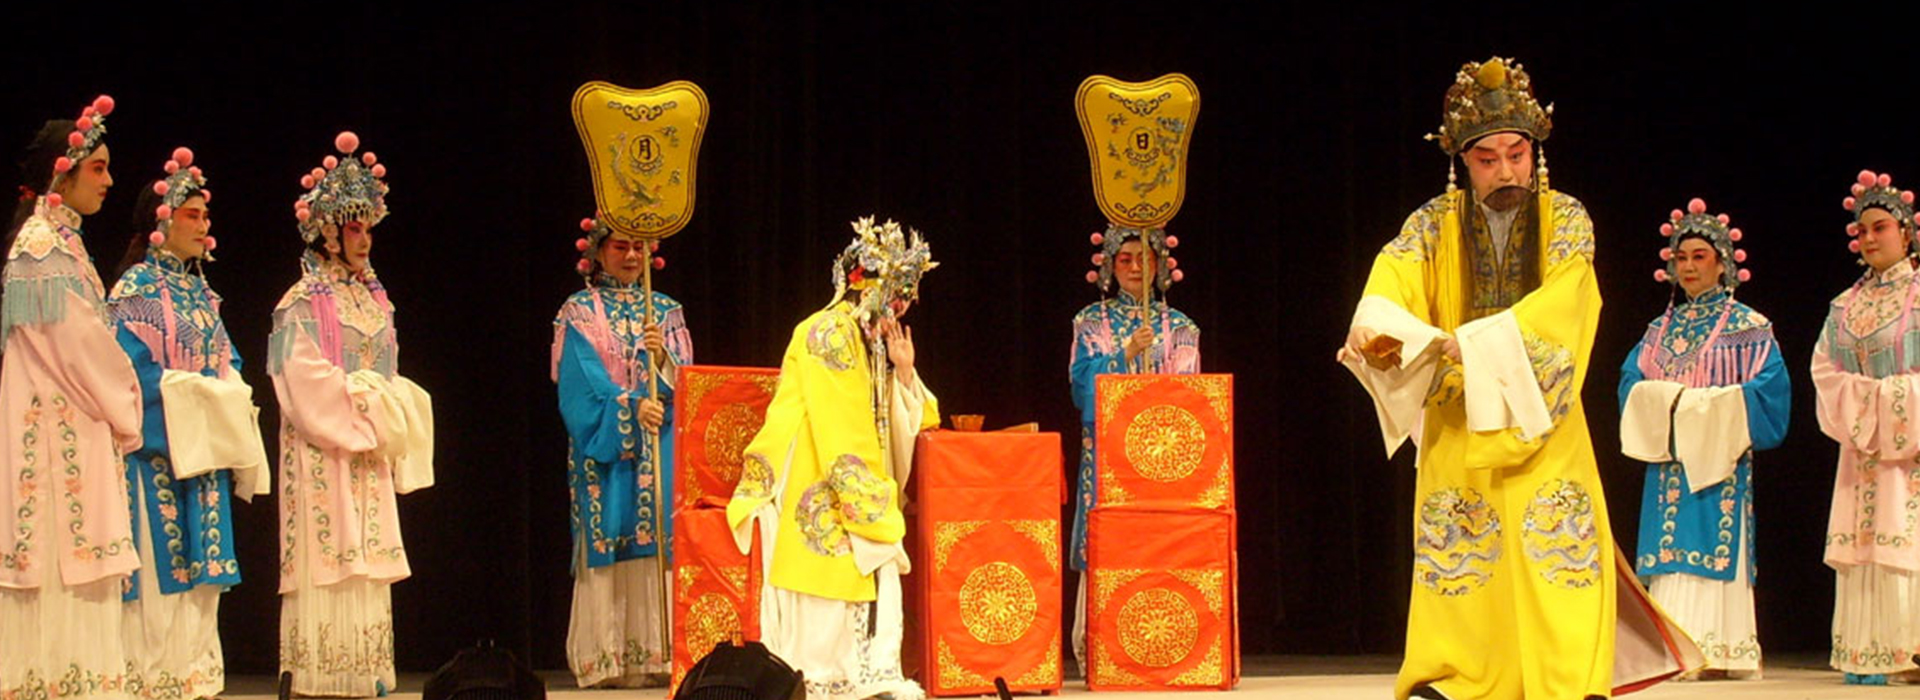 'A Frenchman's View of Chinese Opera' topic of next Modern China Lecture at CSUSB